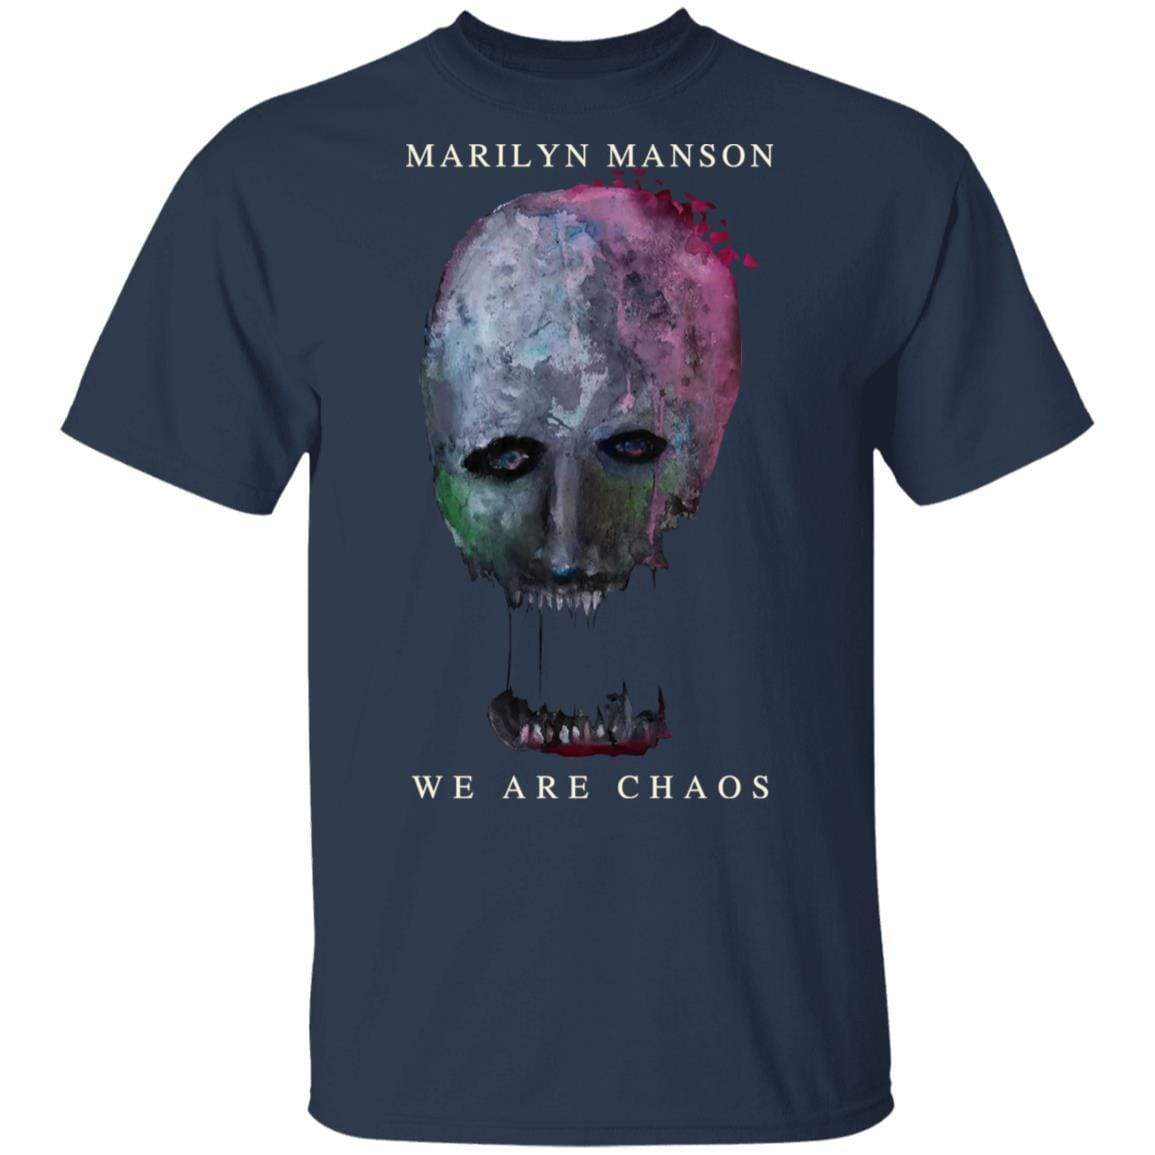 Marilyn Manson We Are Chaos T-Shirts, Hoodies 1049-9966-90279026-48248 - Tee Ript